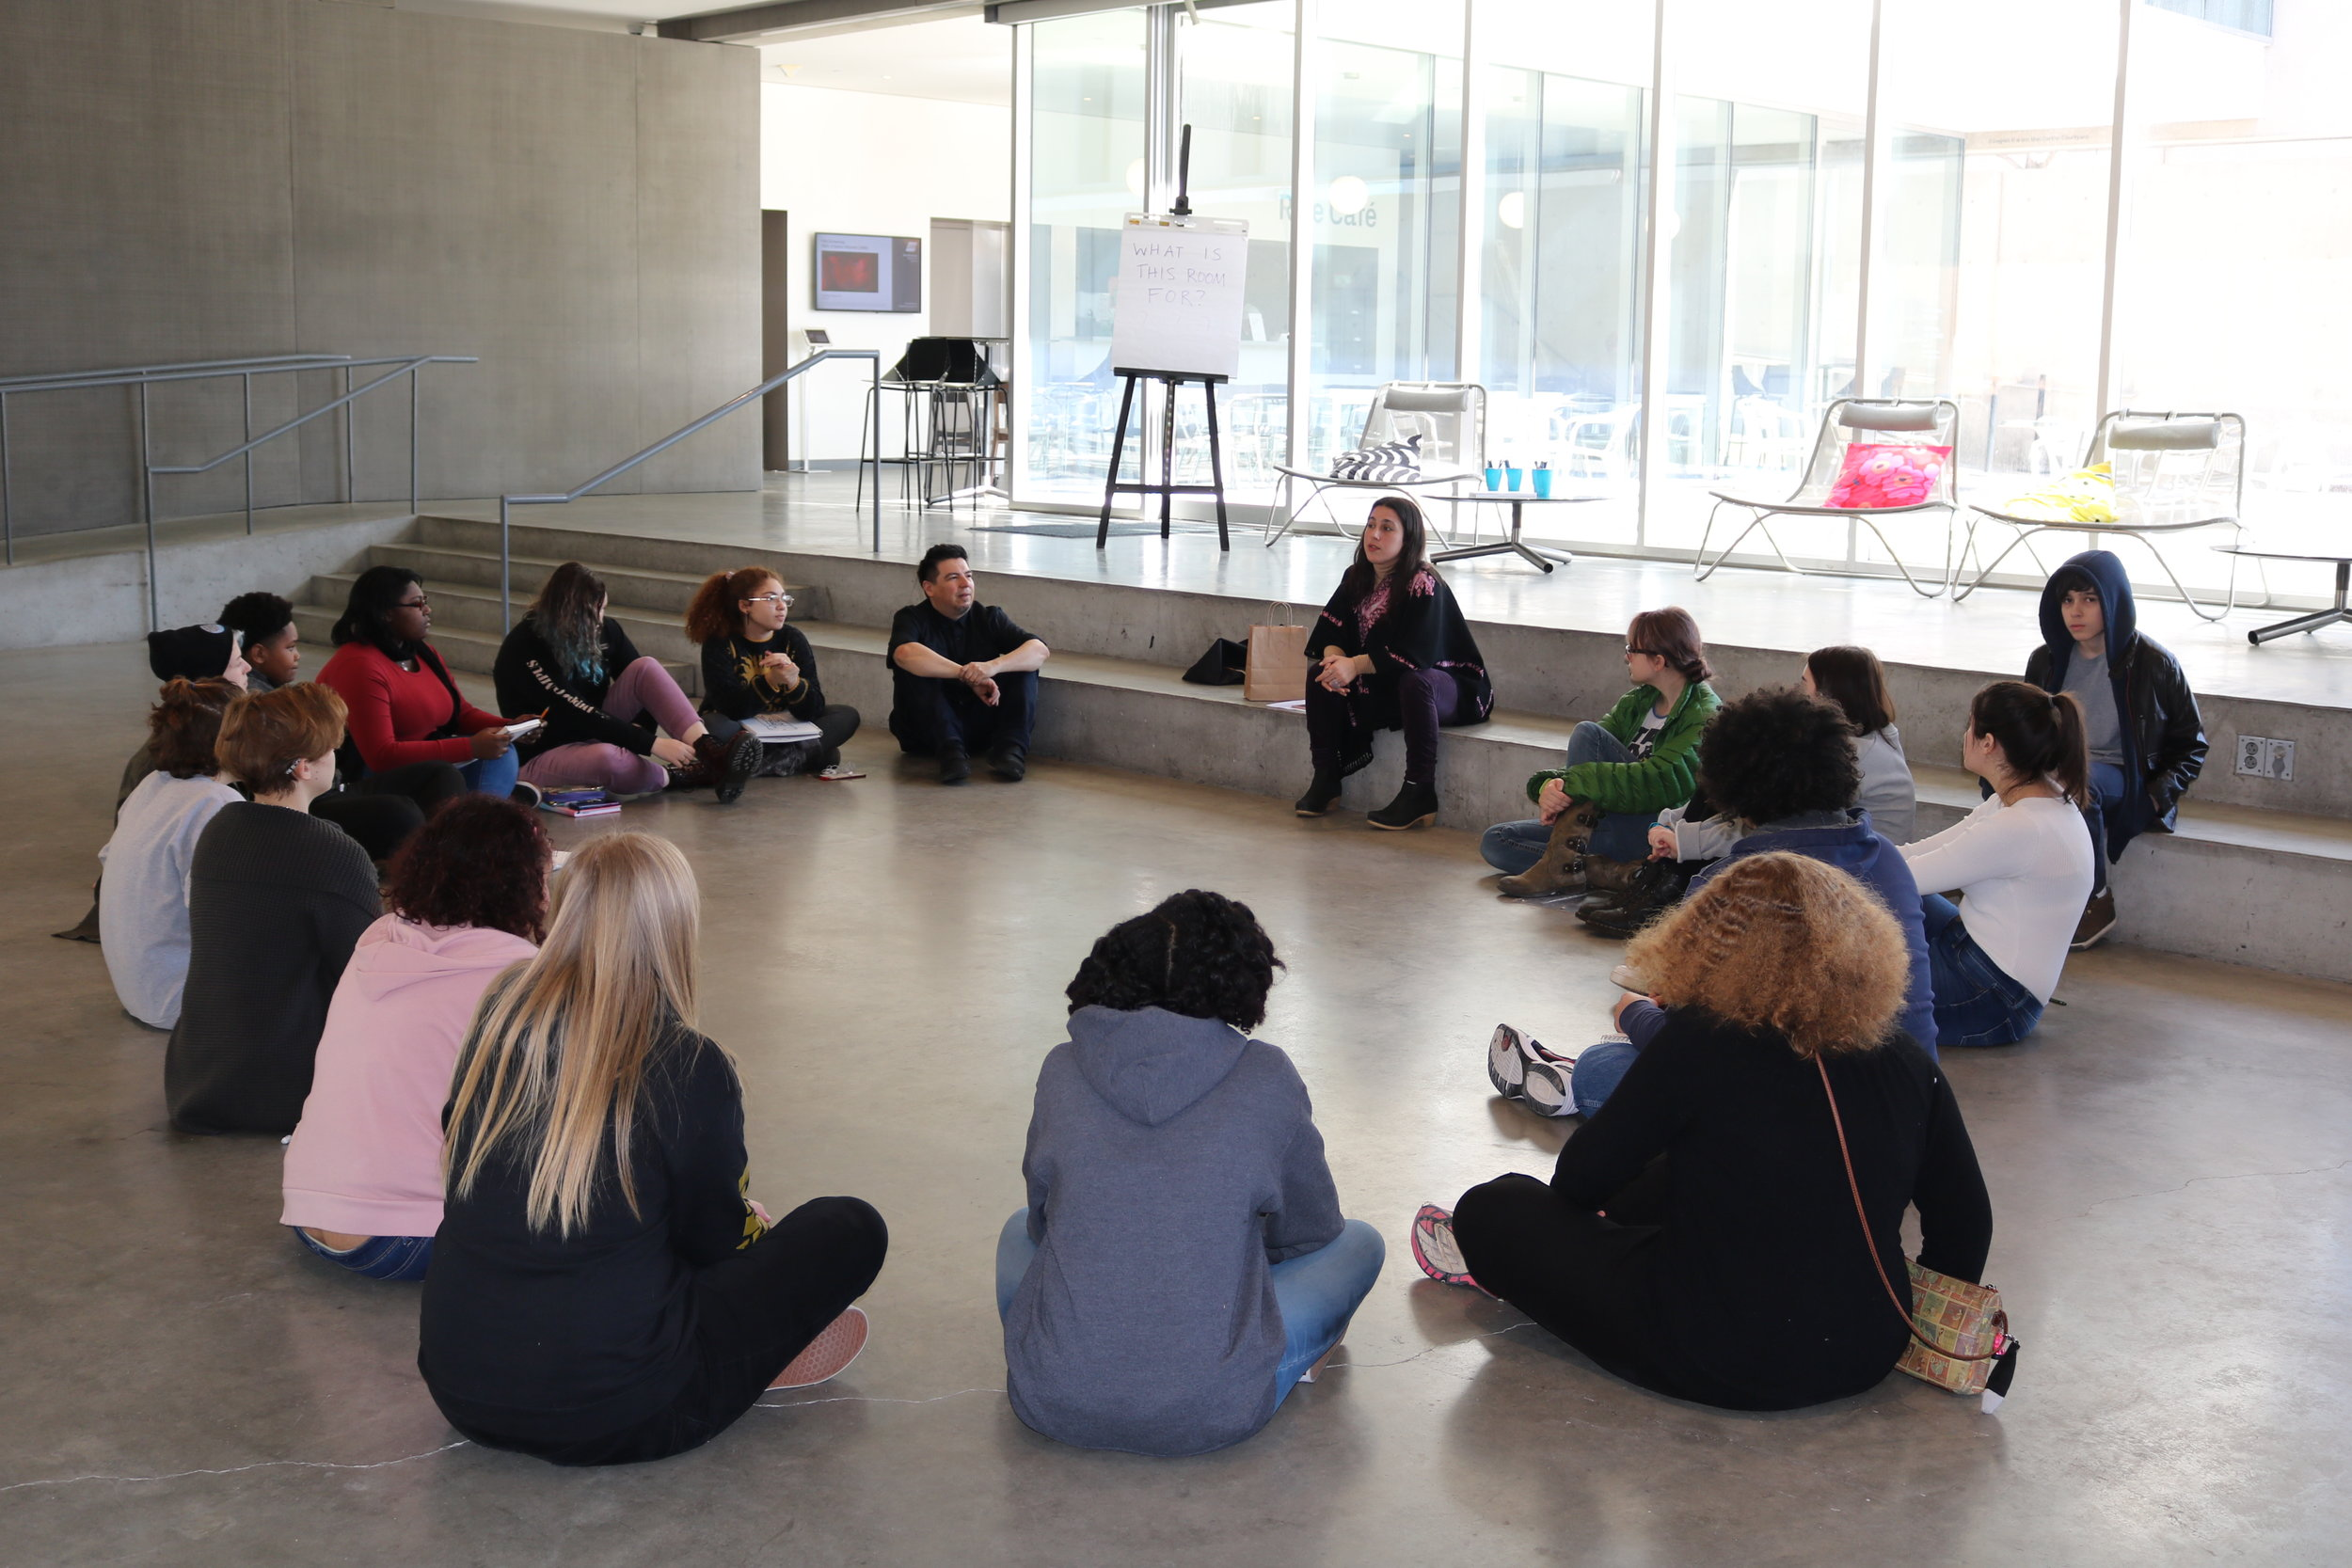 Site-specific meditation with St. Louis art students, in response to Christine Corday's Relative Points, Contemporary Art Museum St. Louis Photos by Lingran Zhang © 2019